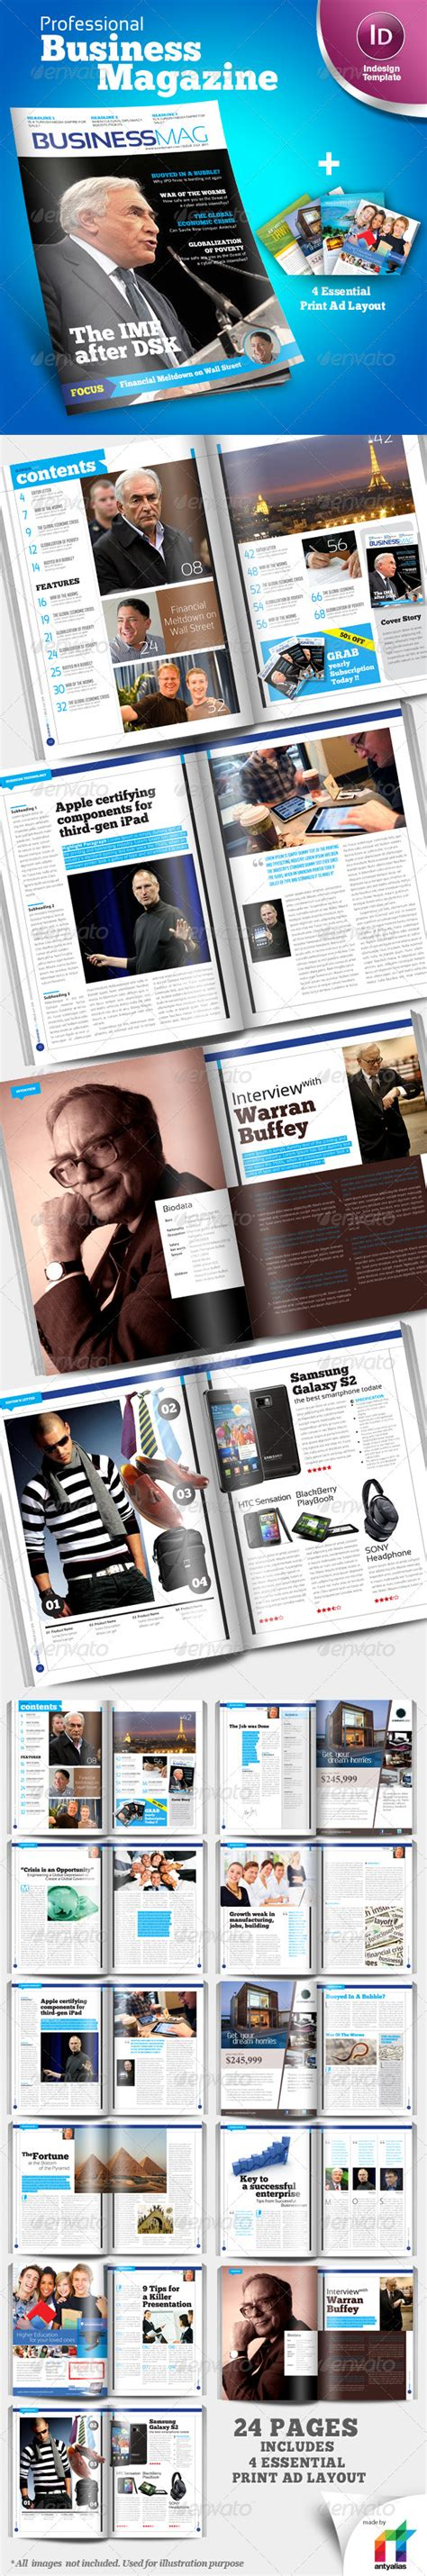 magazine layout template graphicriver free download professional business magazine indesign